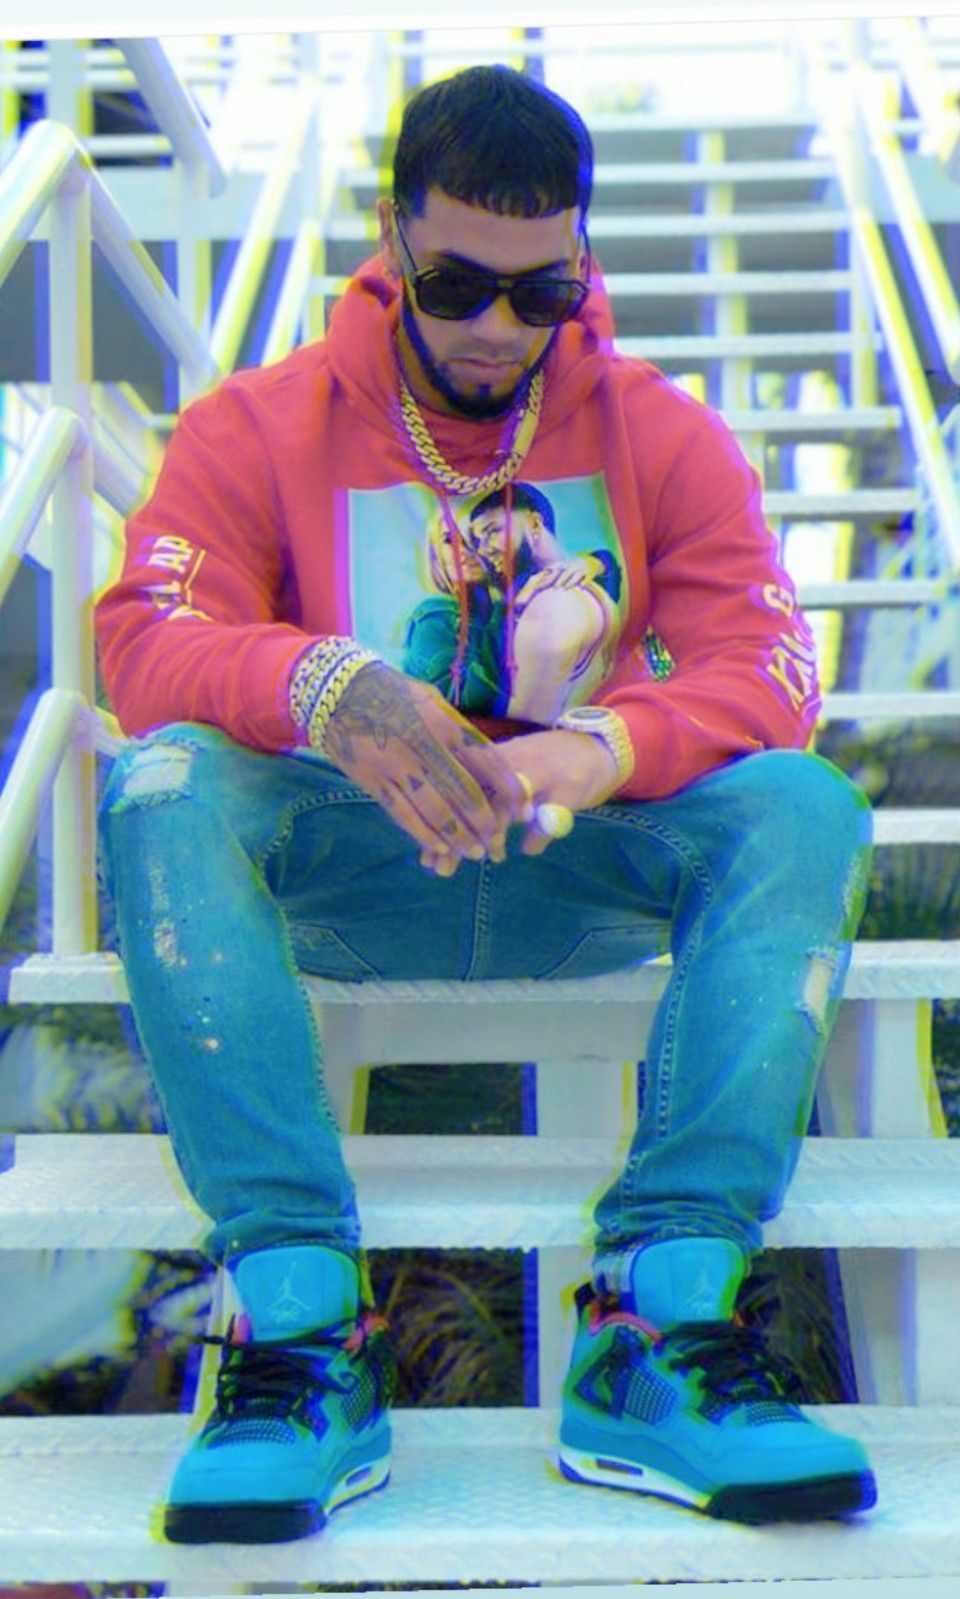 Repost Anuel Aa Rapper Style Cute Wallpapers Bunny Pictures